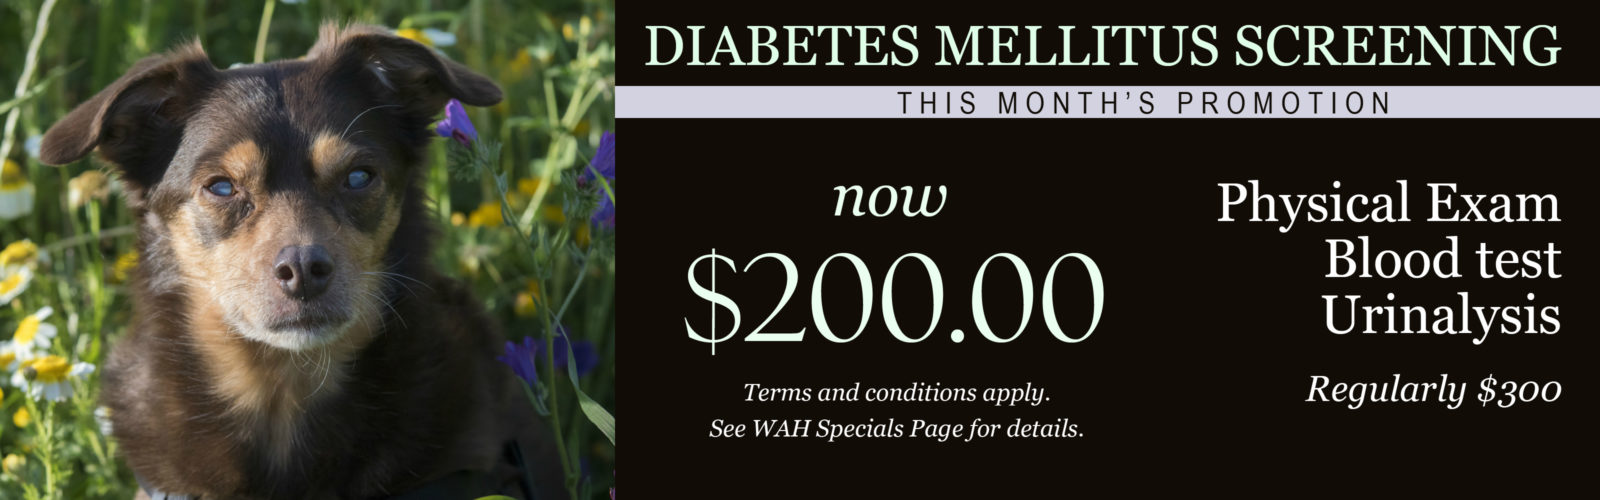 Special Promotion for Diabetes Mellitus Screening at Woodlawn Animal Hospital